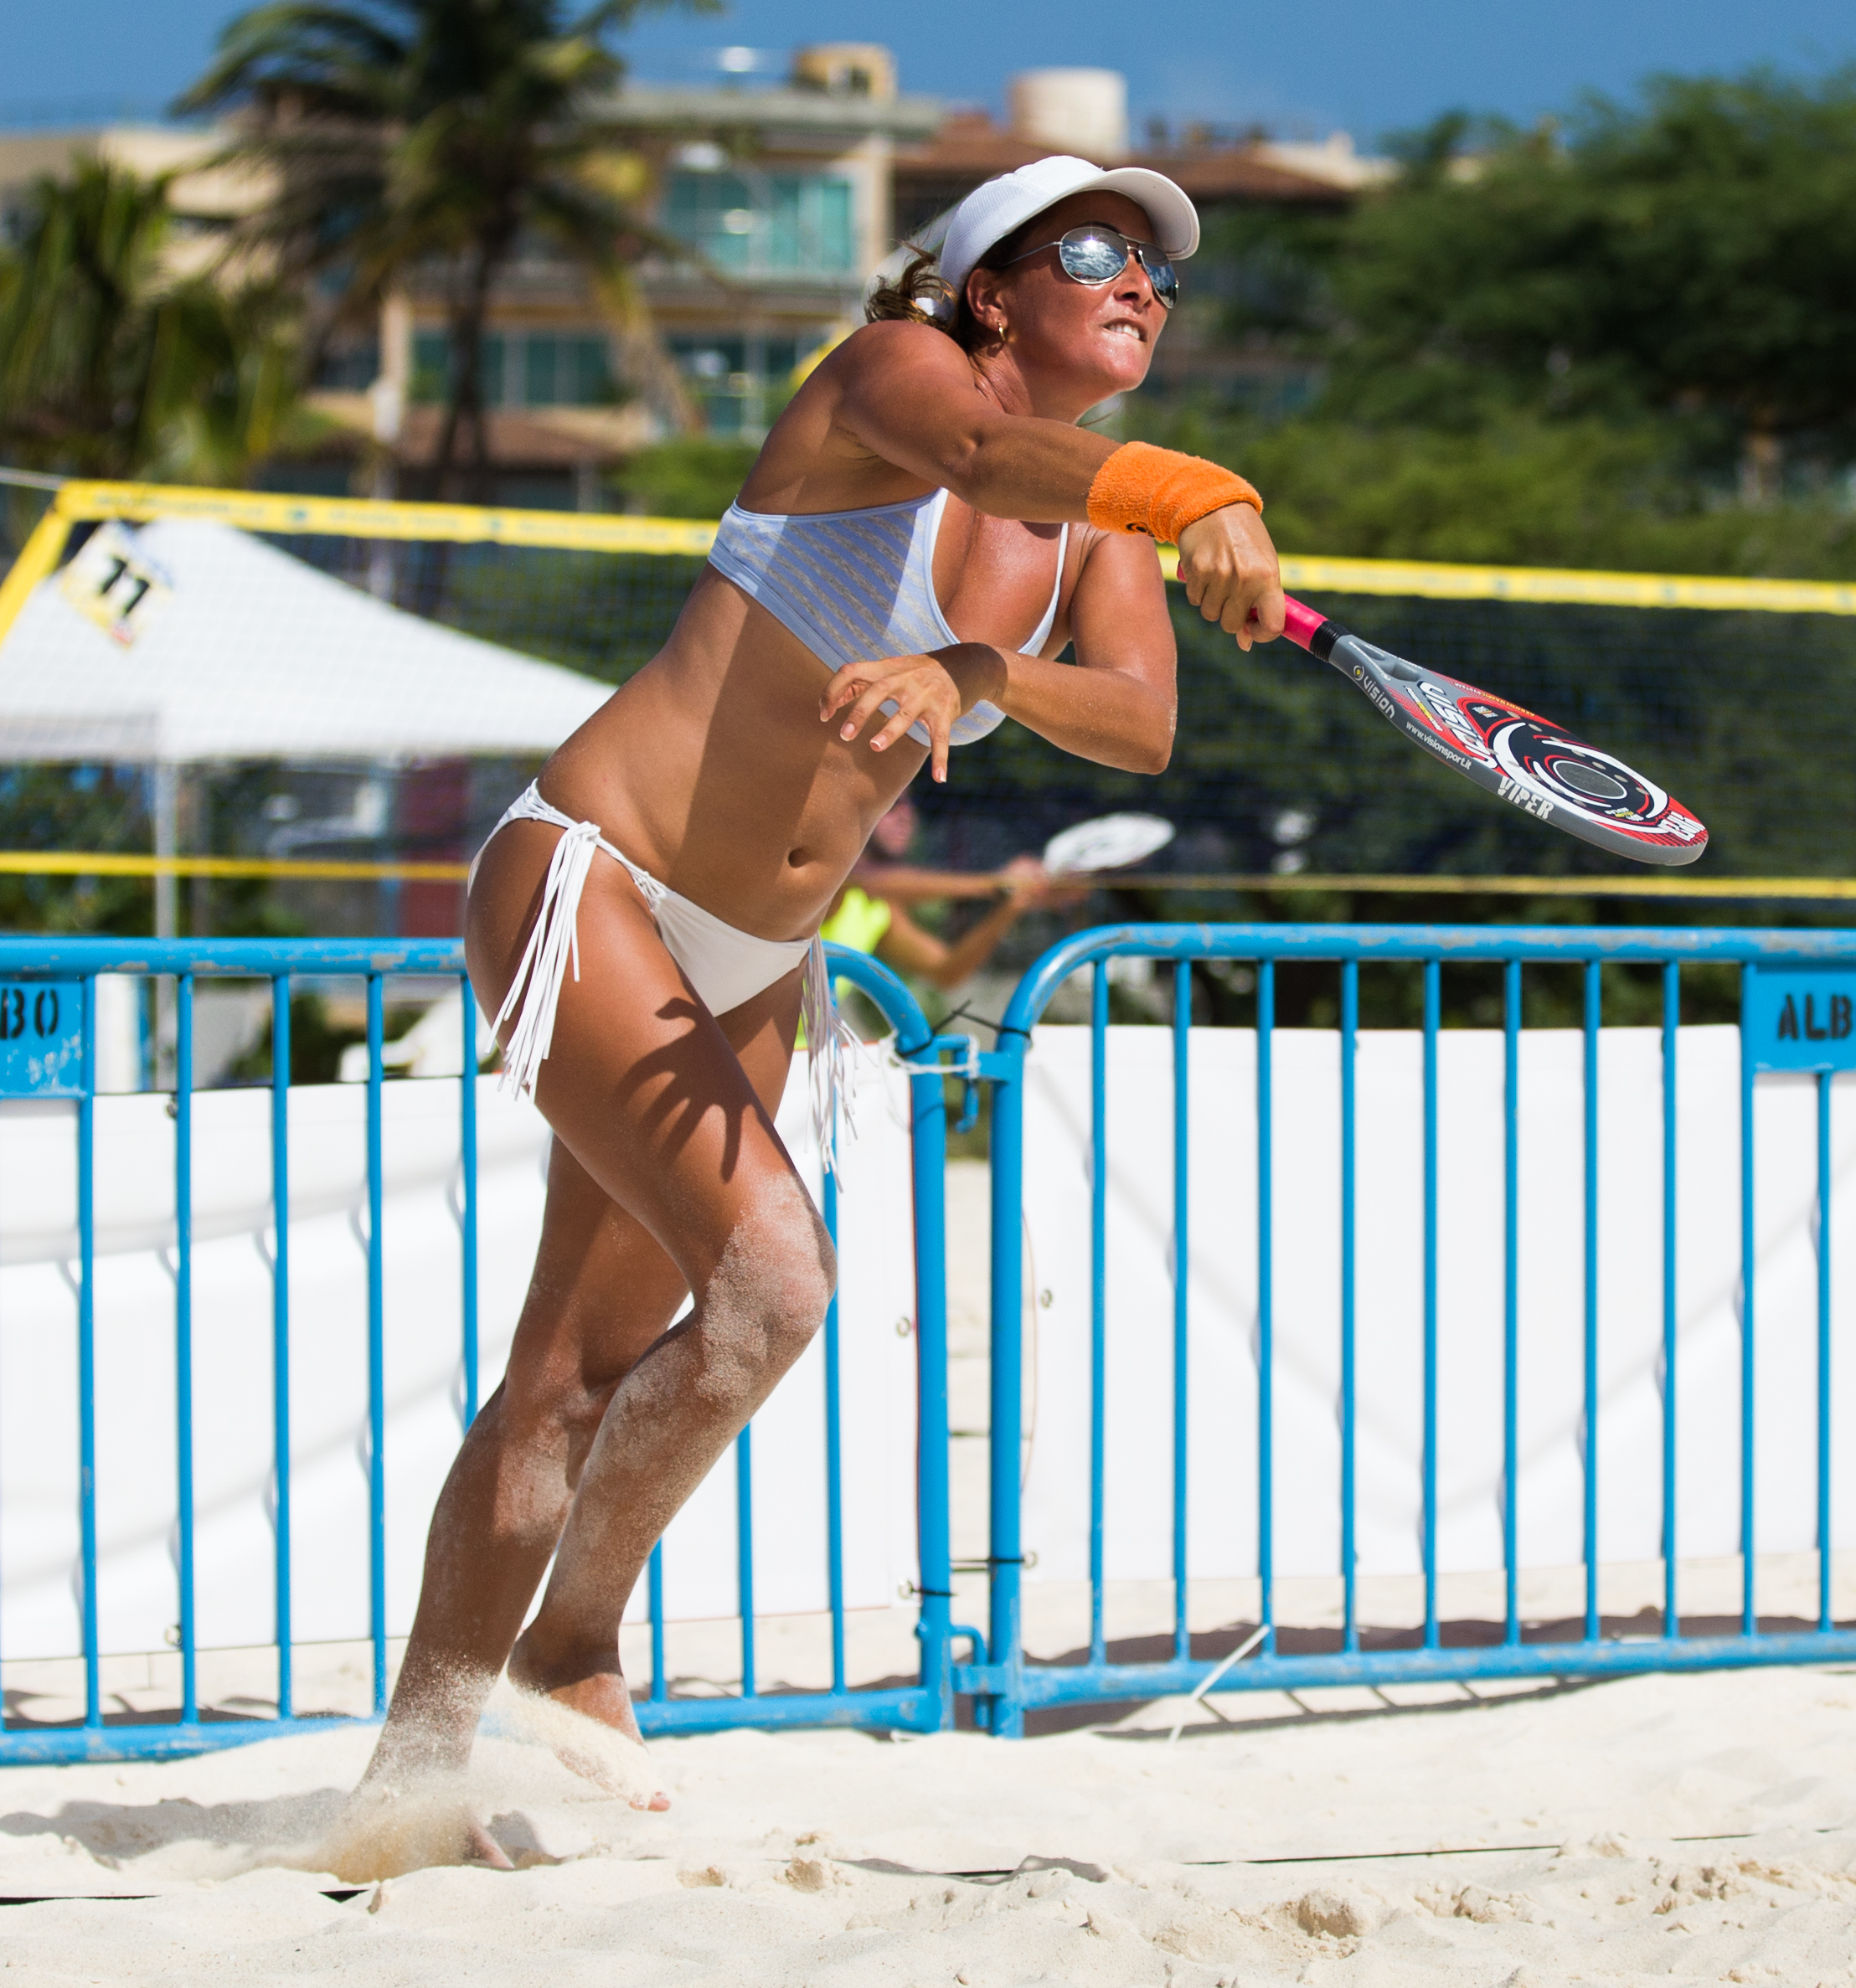 A73Q6974-3.jpg Beach Tennis in Aruba